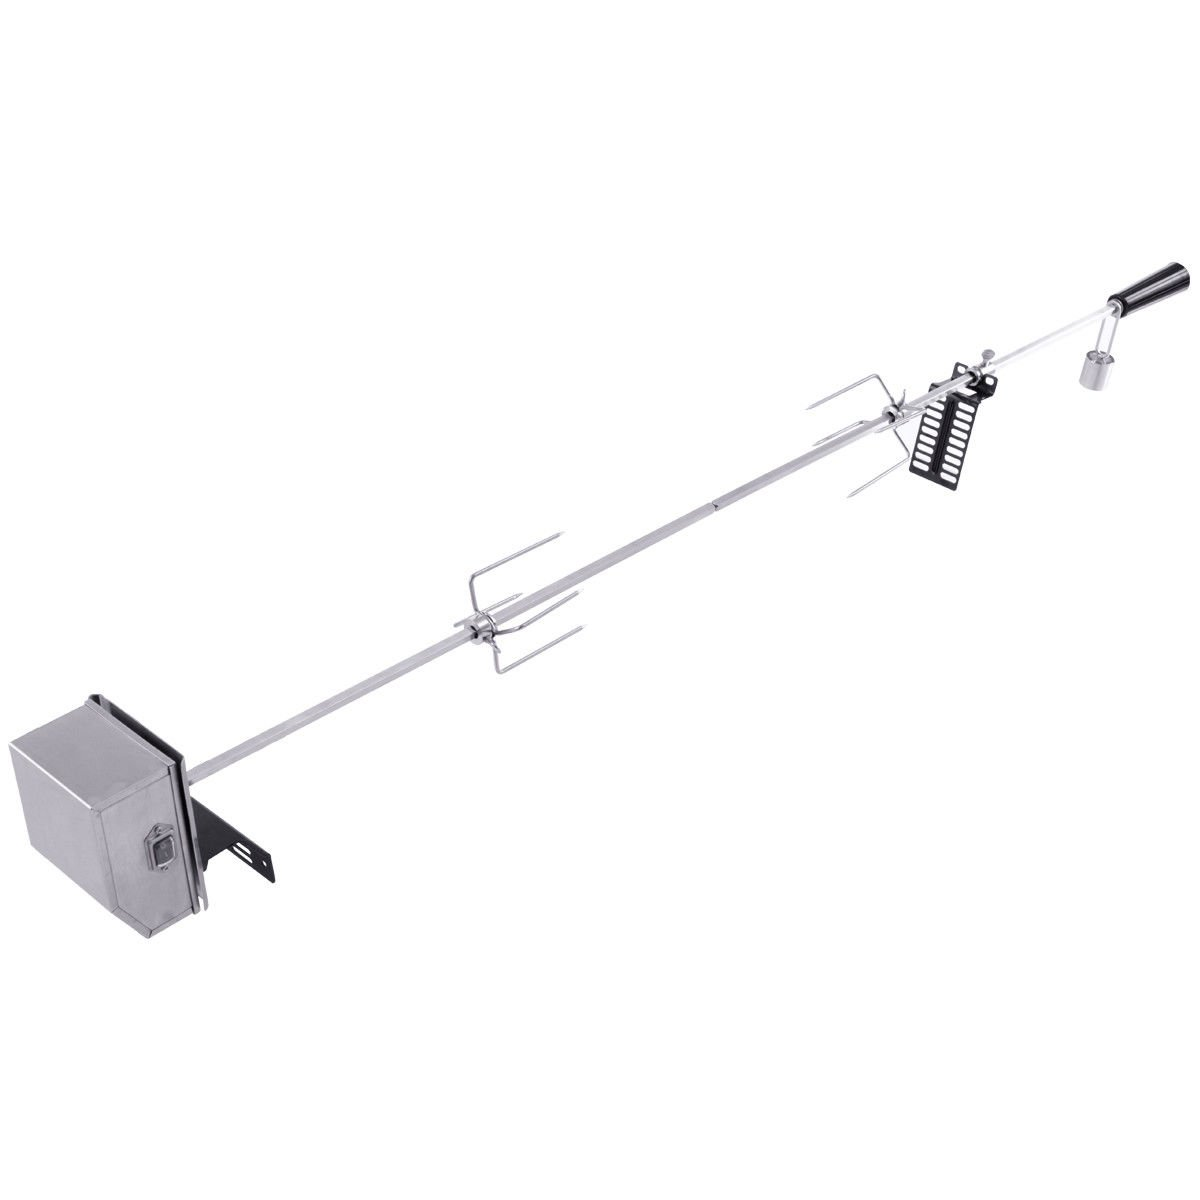 Giantex Universal BBQ Rotisserie Motor Kit Stainless Steel Heavy Duty Open Fire Spit for Most Burner Grills 47'' Square Spit Rod On/Off Switch Deluxe Electric Grill Rotisseries Kit